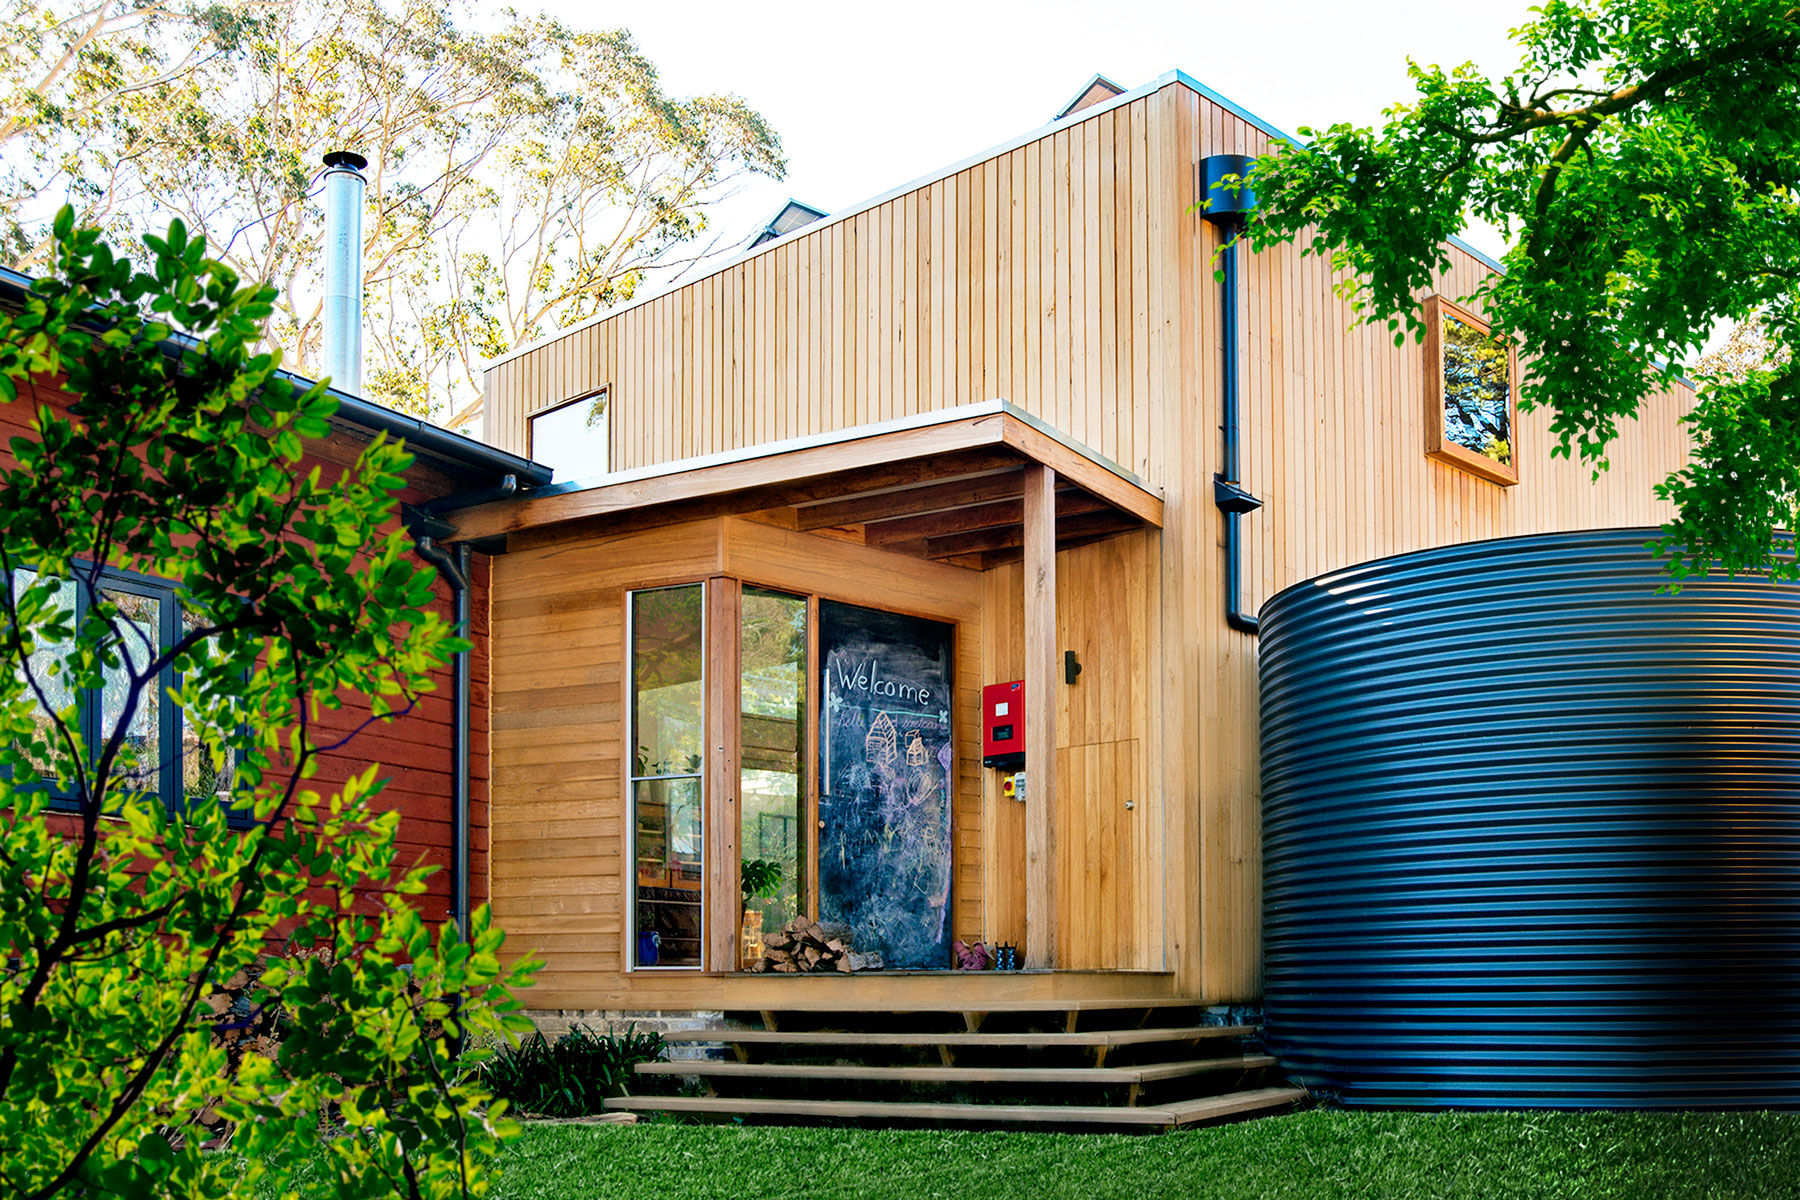 Wentworth falls mud brick house new build image solar passive extension in katoomba nsw image